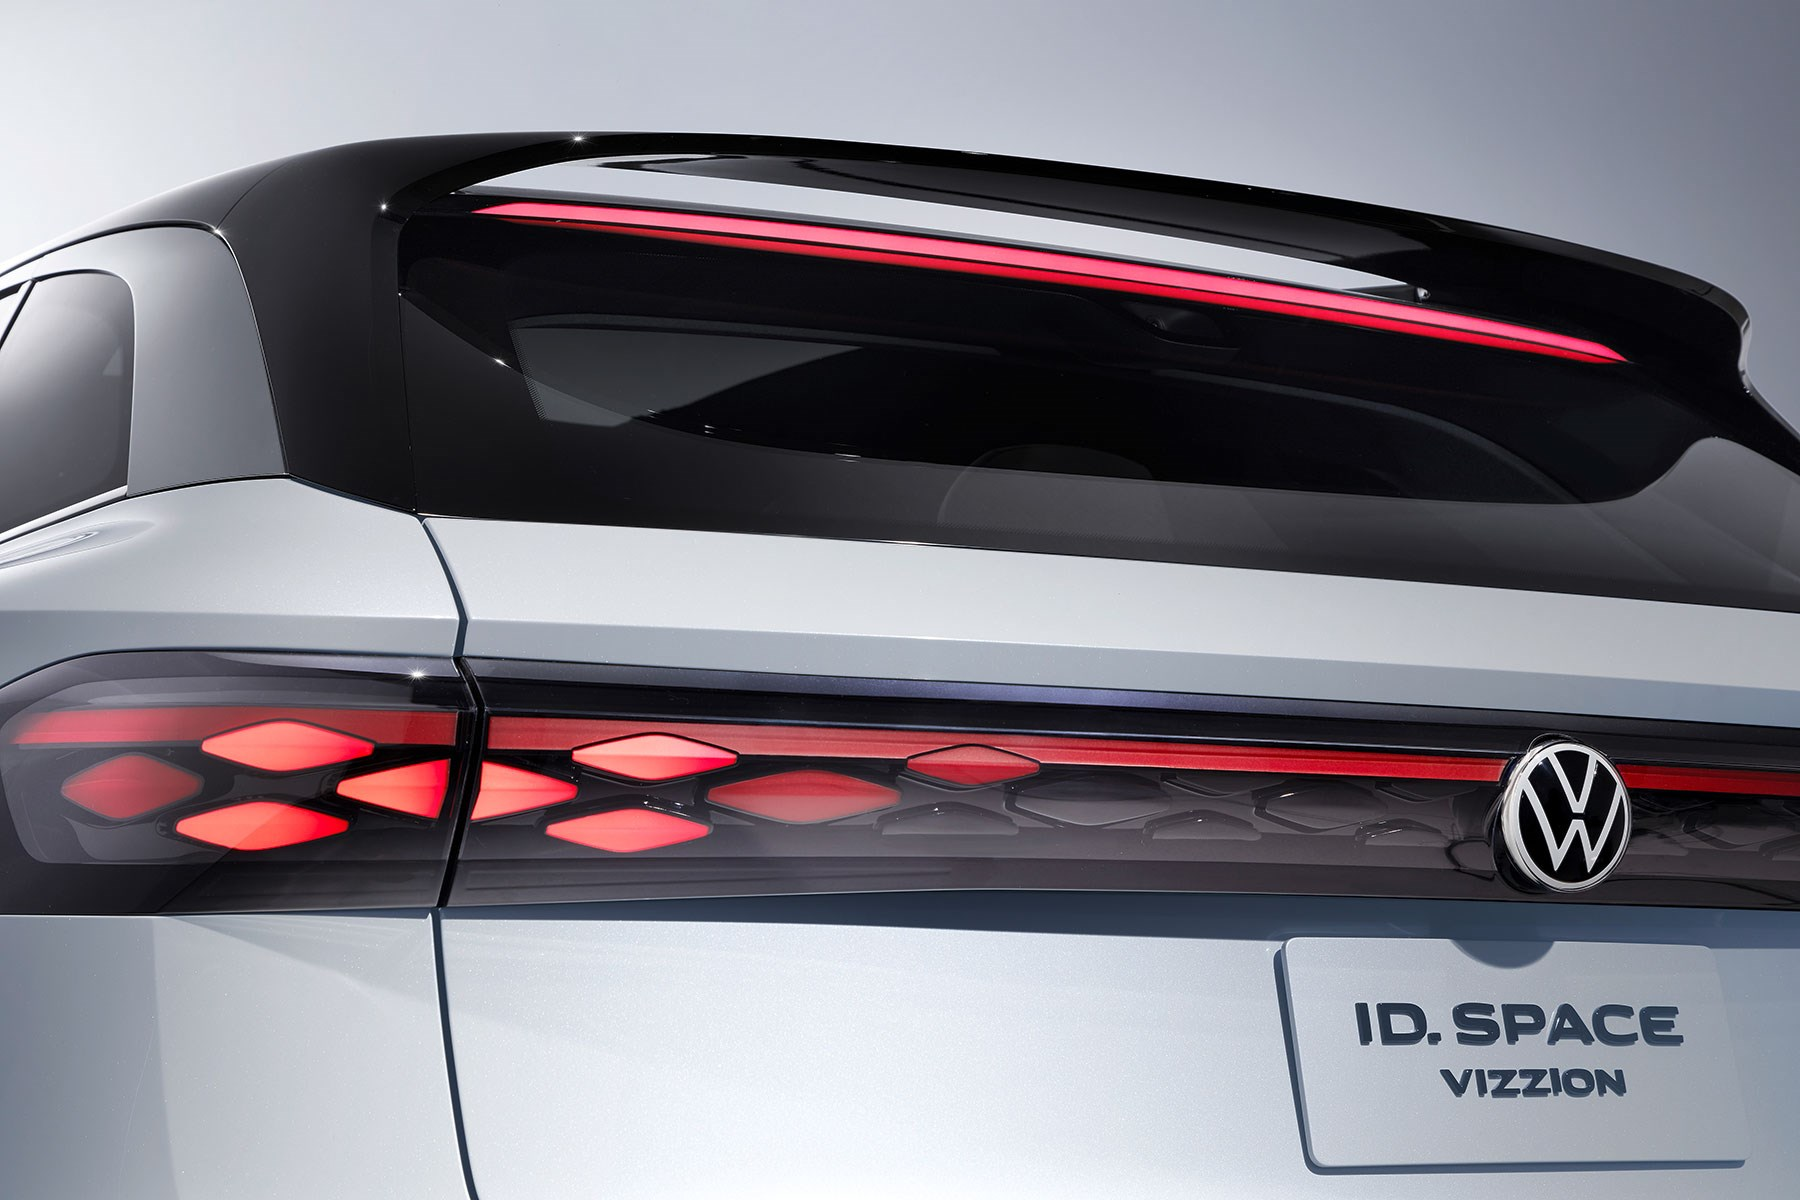 VW ID Space Vizzion concept previews new electric estate